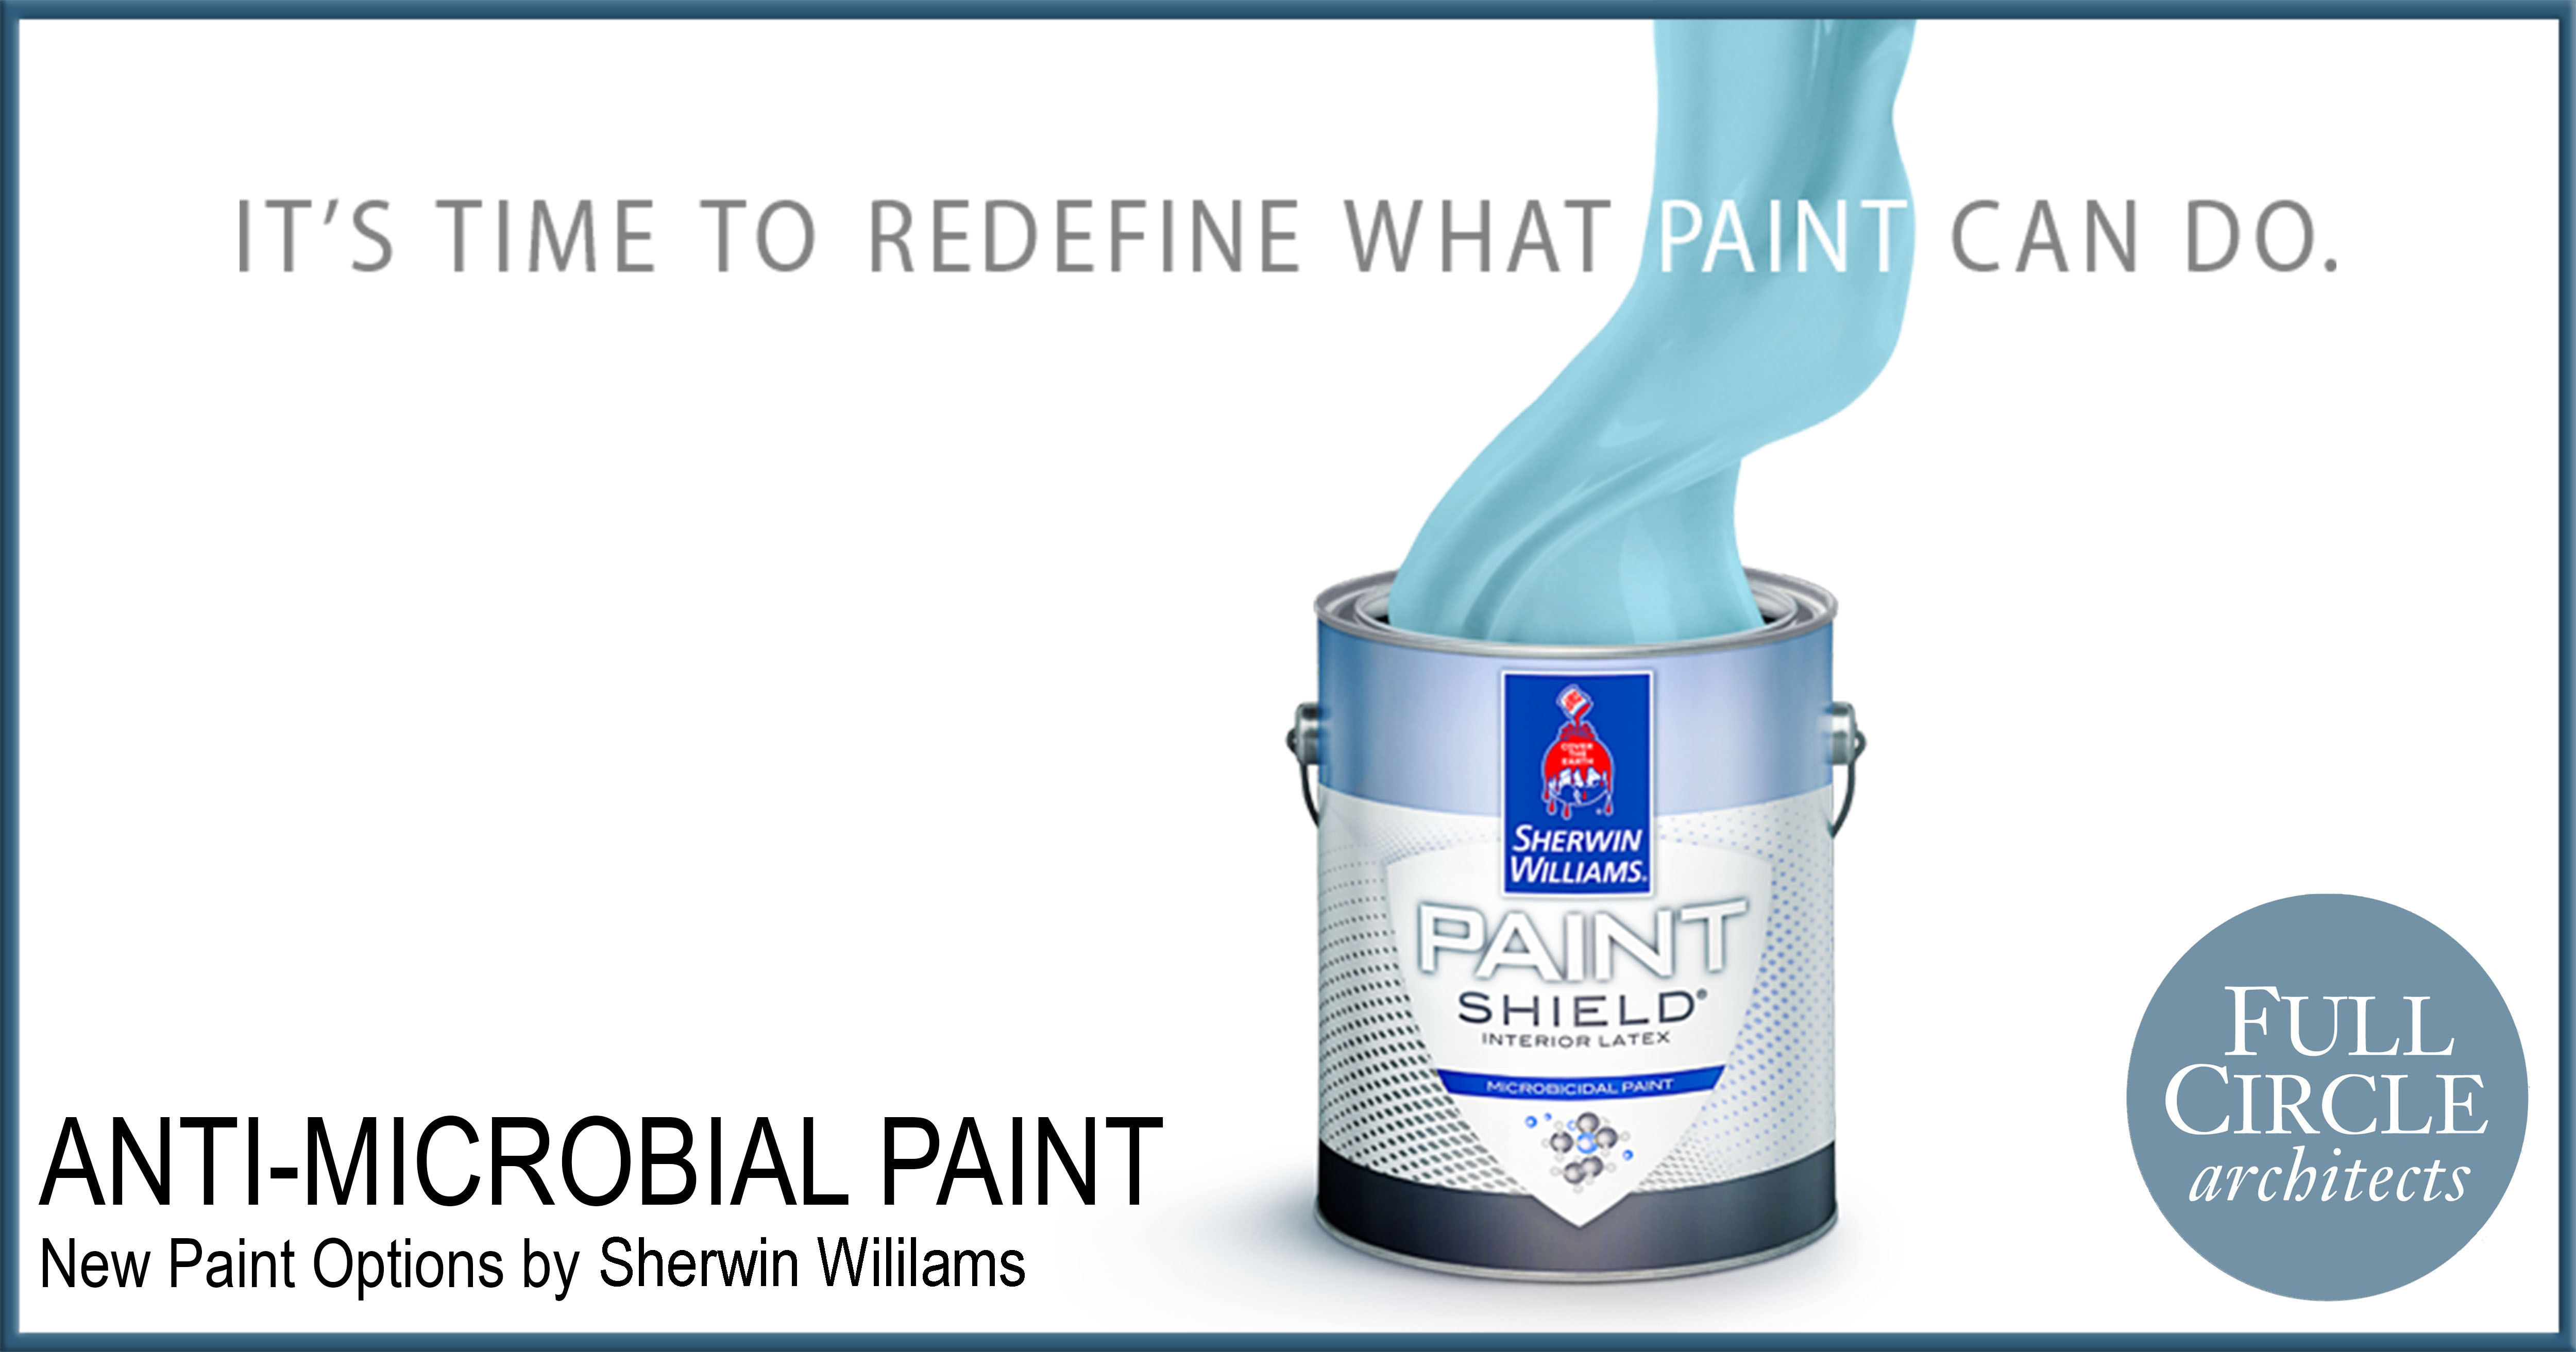 Antimicrobial Paint